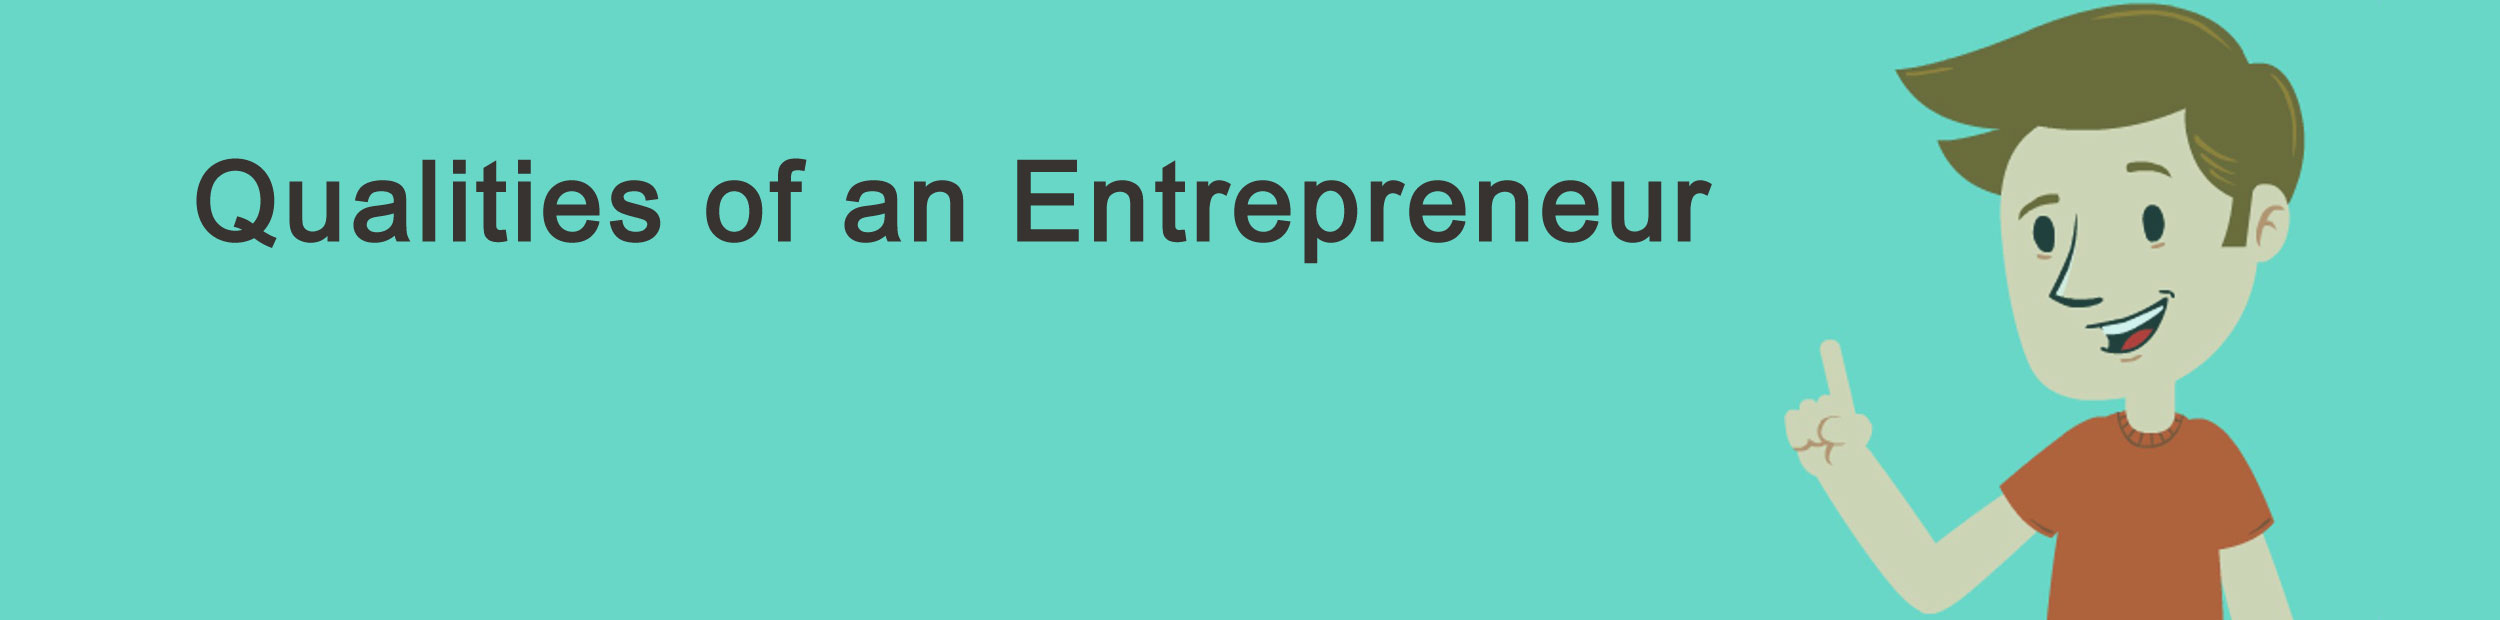 dos donts qualities of an entrepreneur